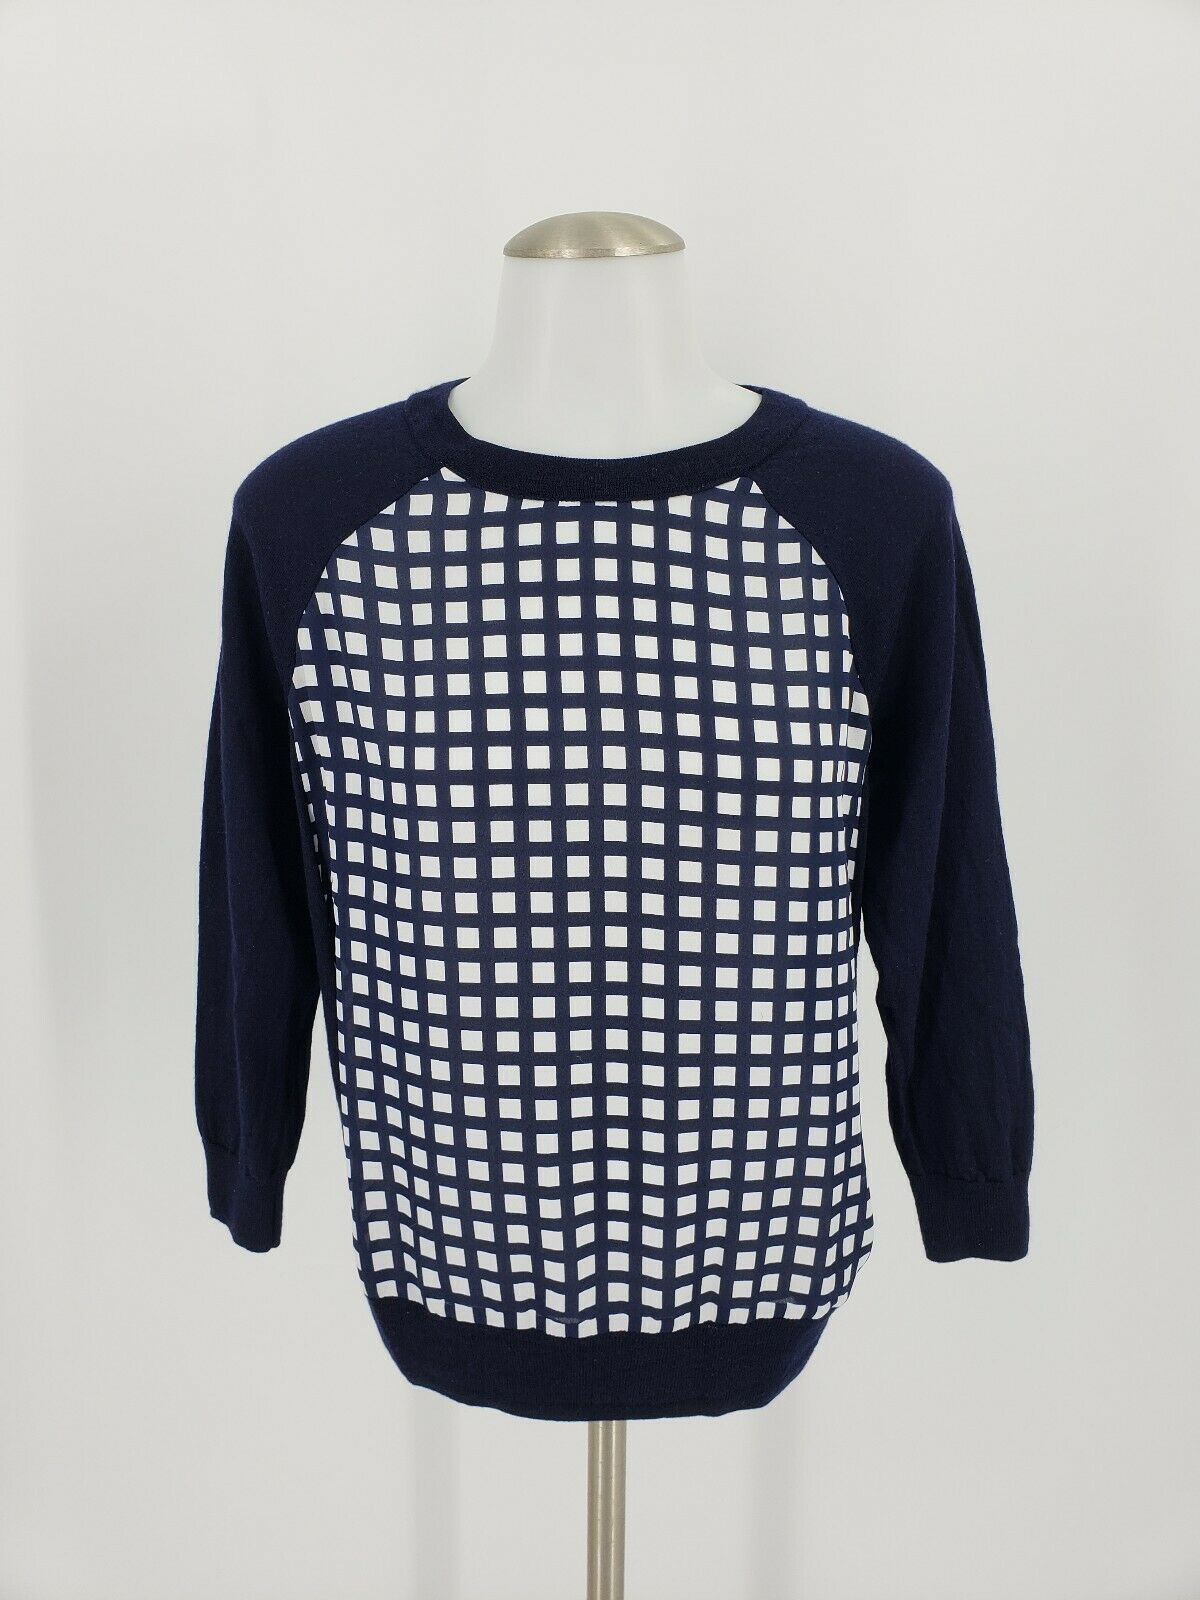 Women's J Crew Small Navy bluee Box Print Wool Sweater